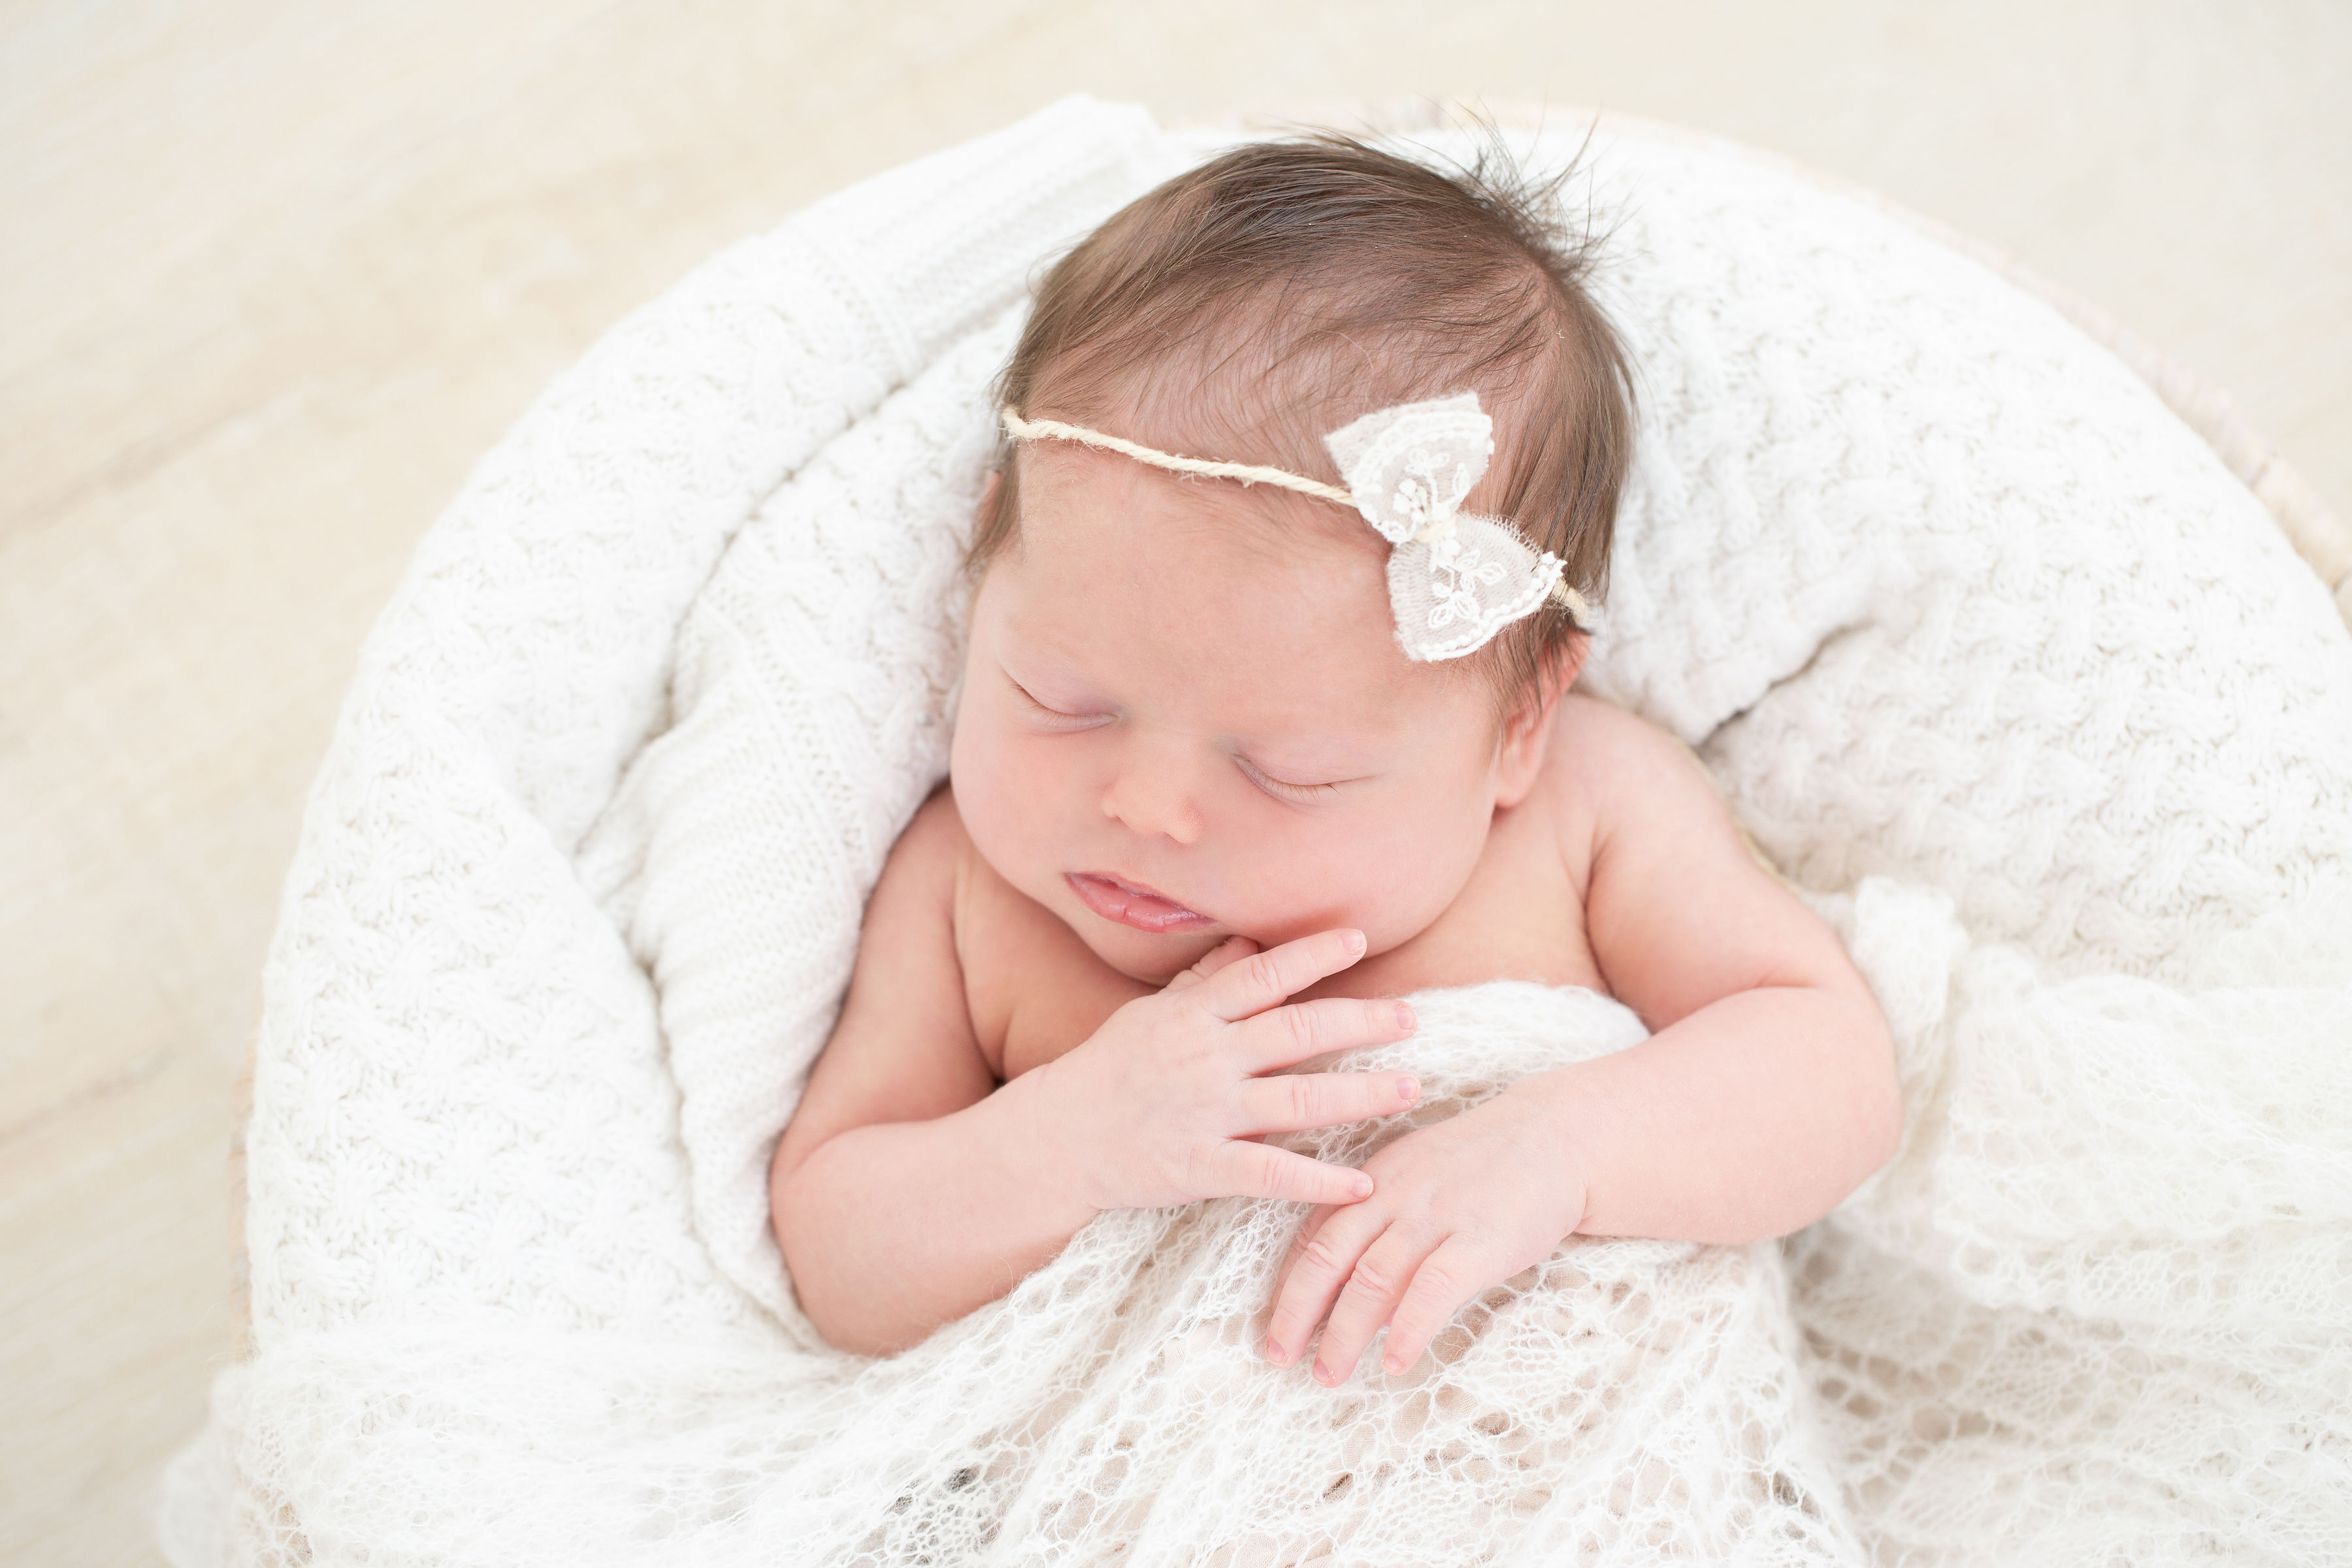 It's A GIRL! Baby Aubrey's Newborn Pictures & Birth Story